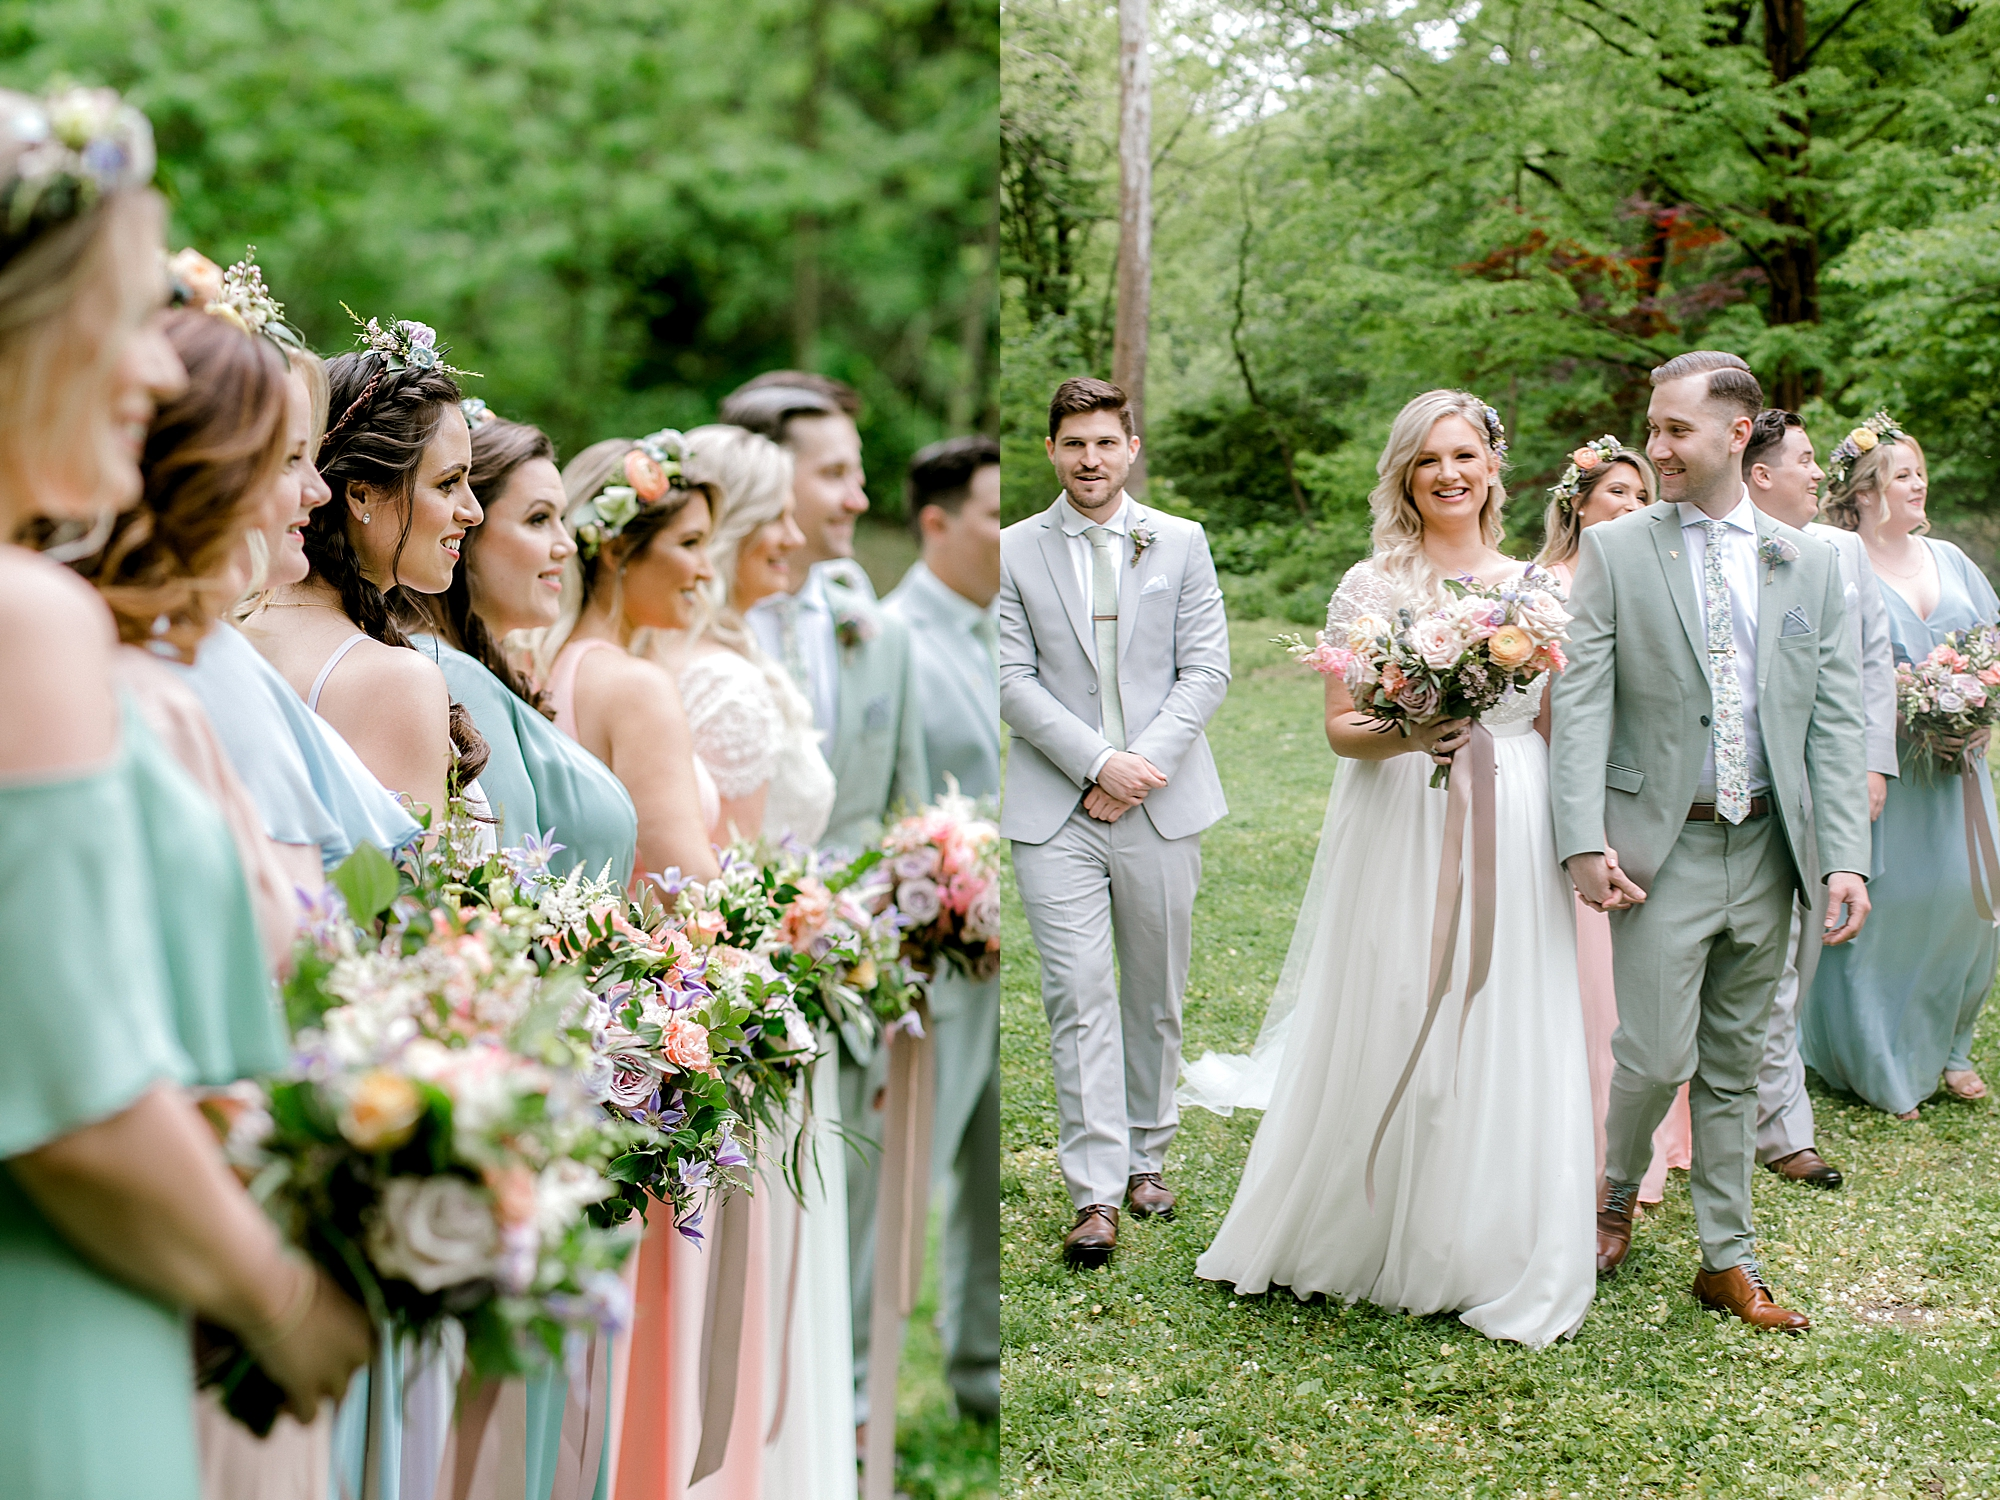 Intimate and Sweet Estate Wedding Photography by Magdalena Studios 0039